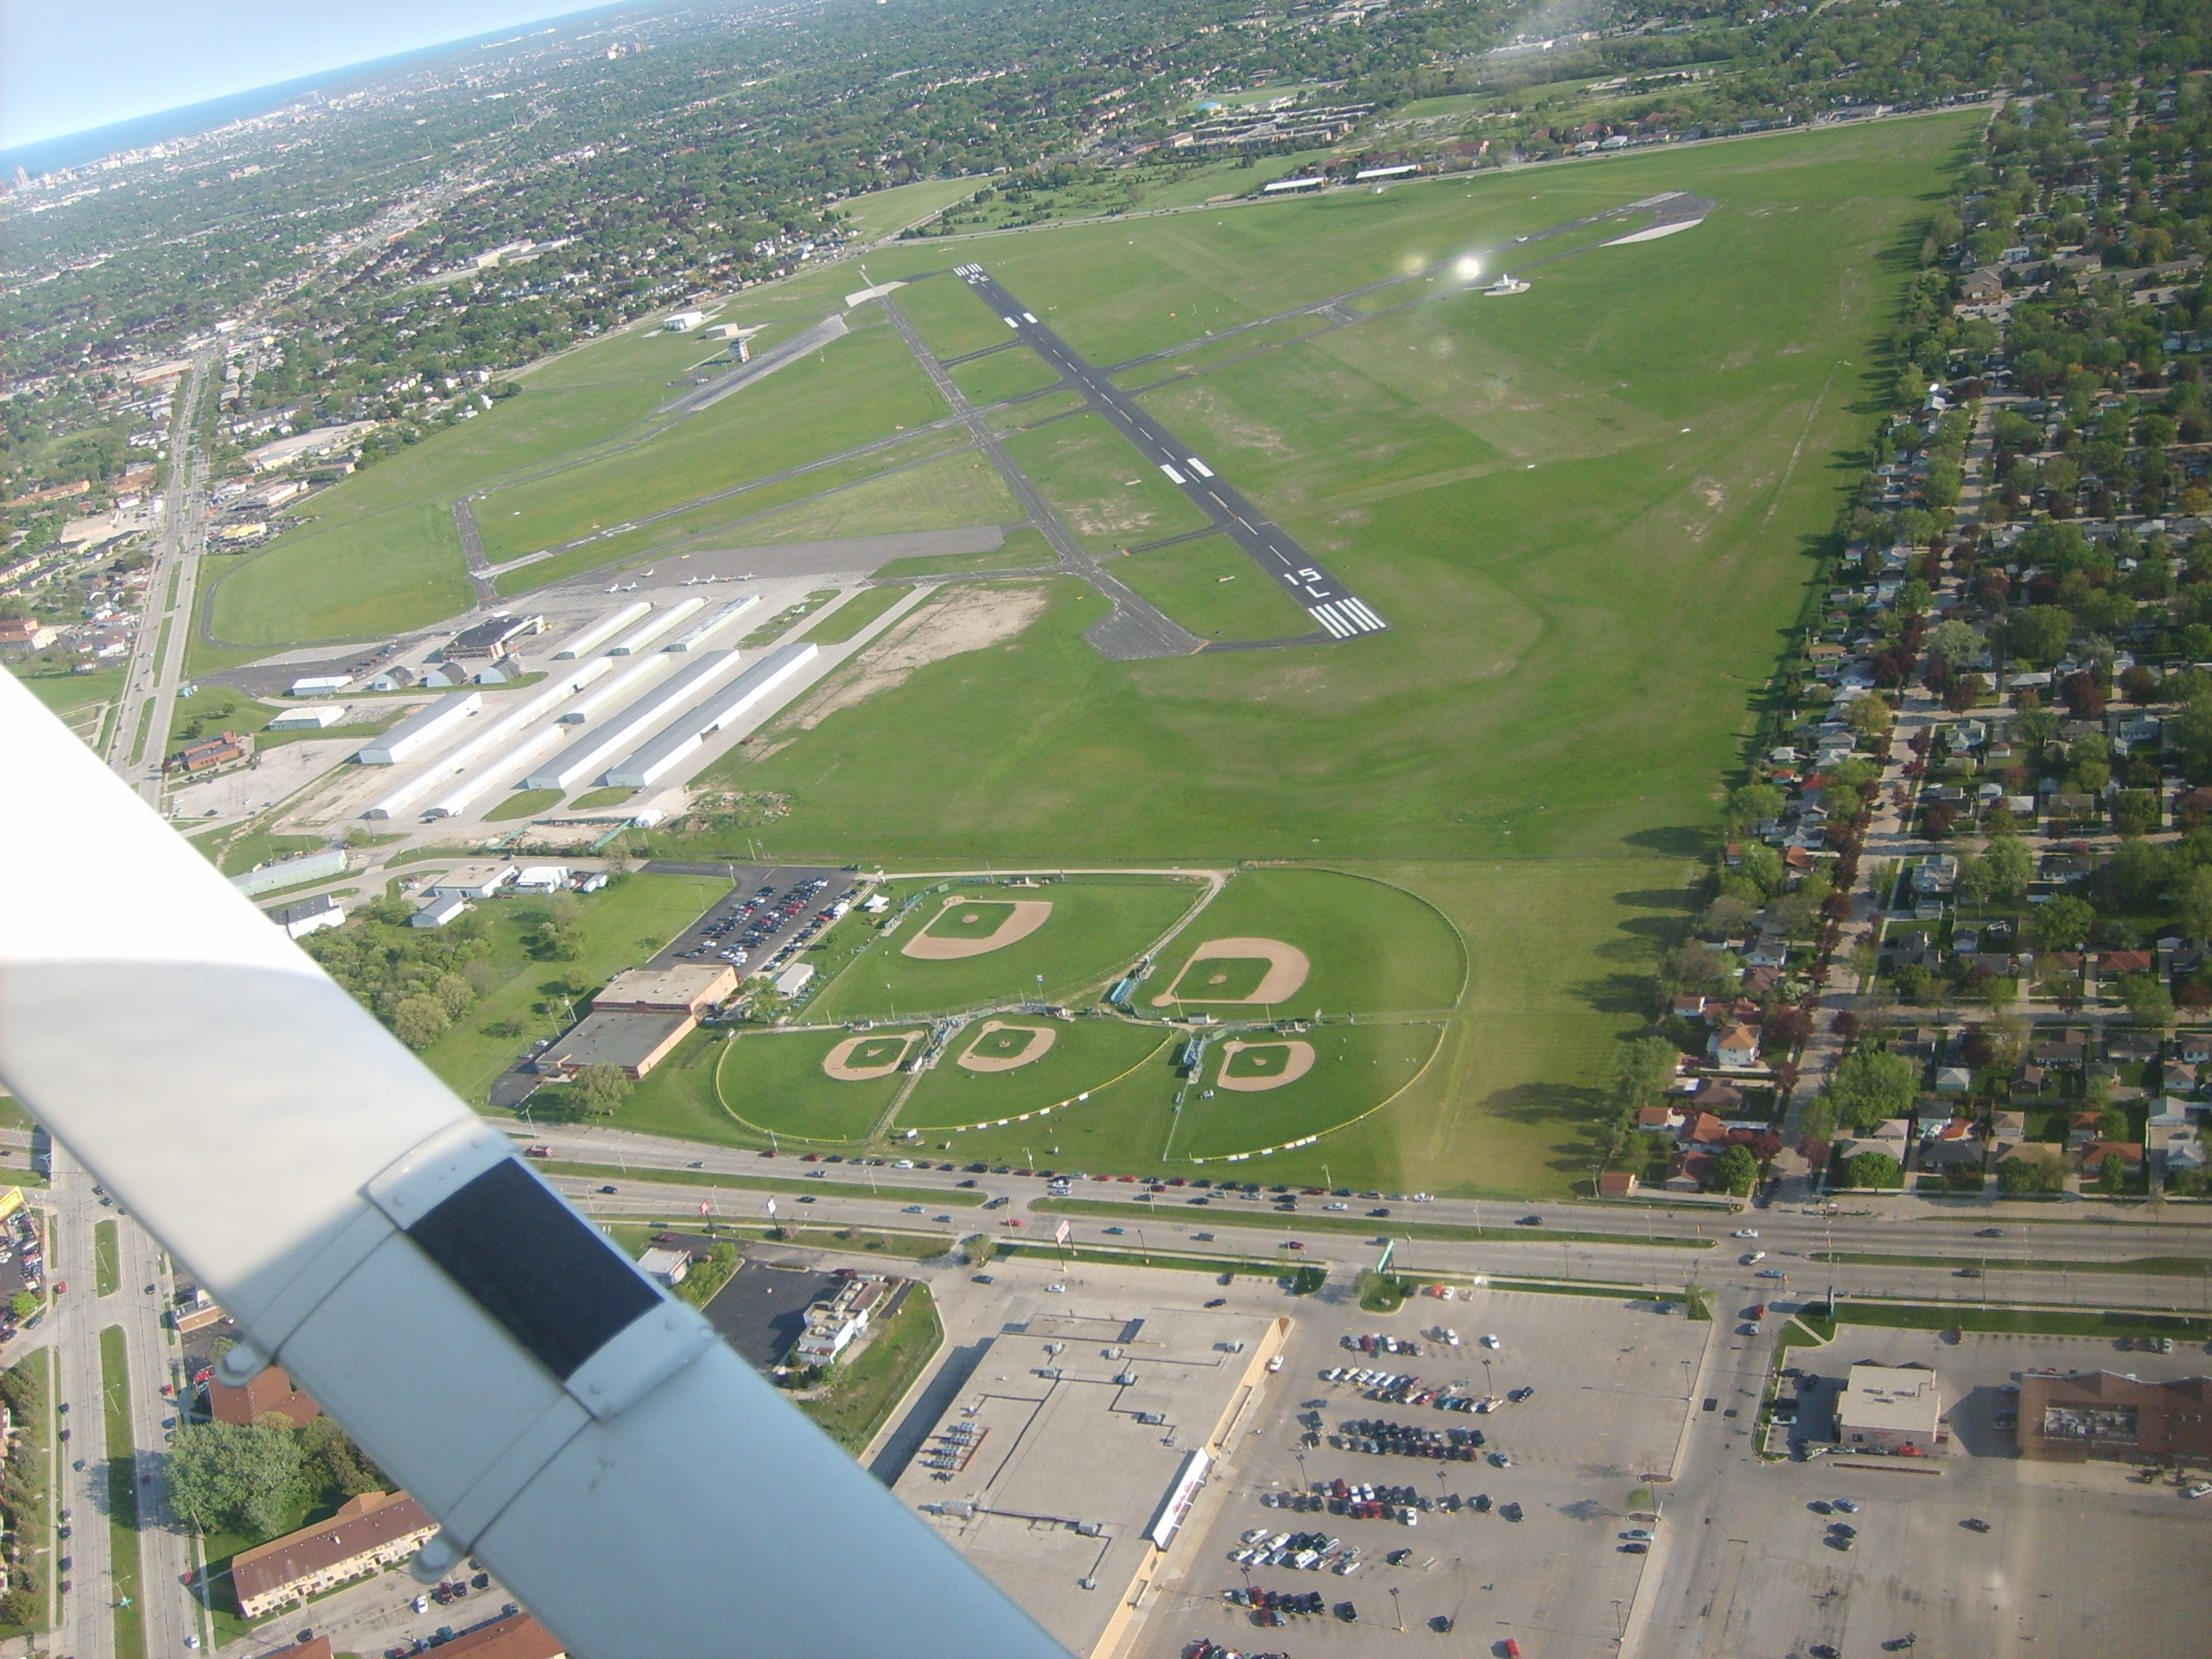 Lawrence J Timmerman Airport